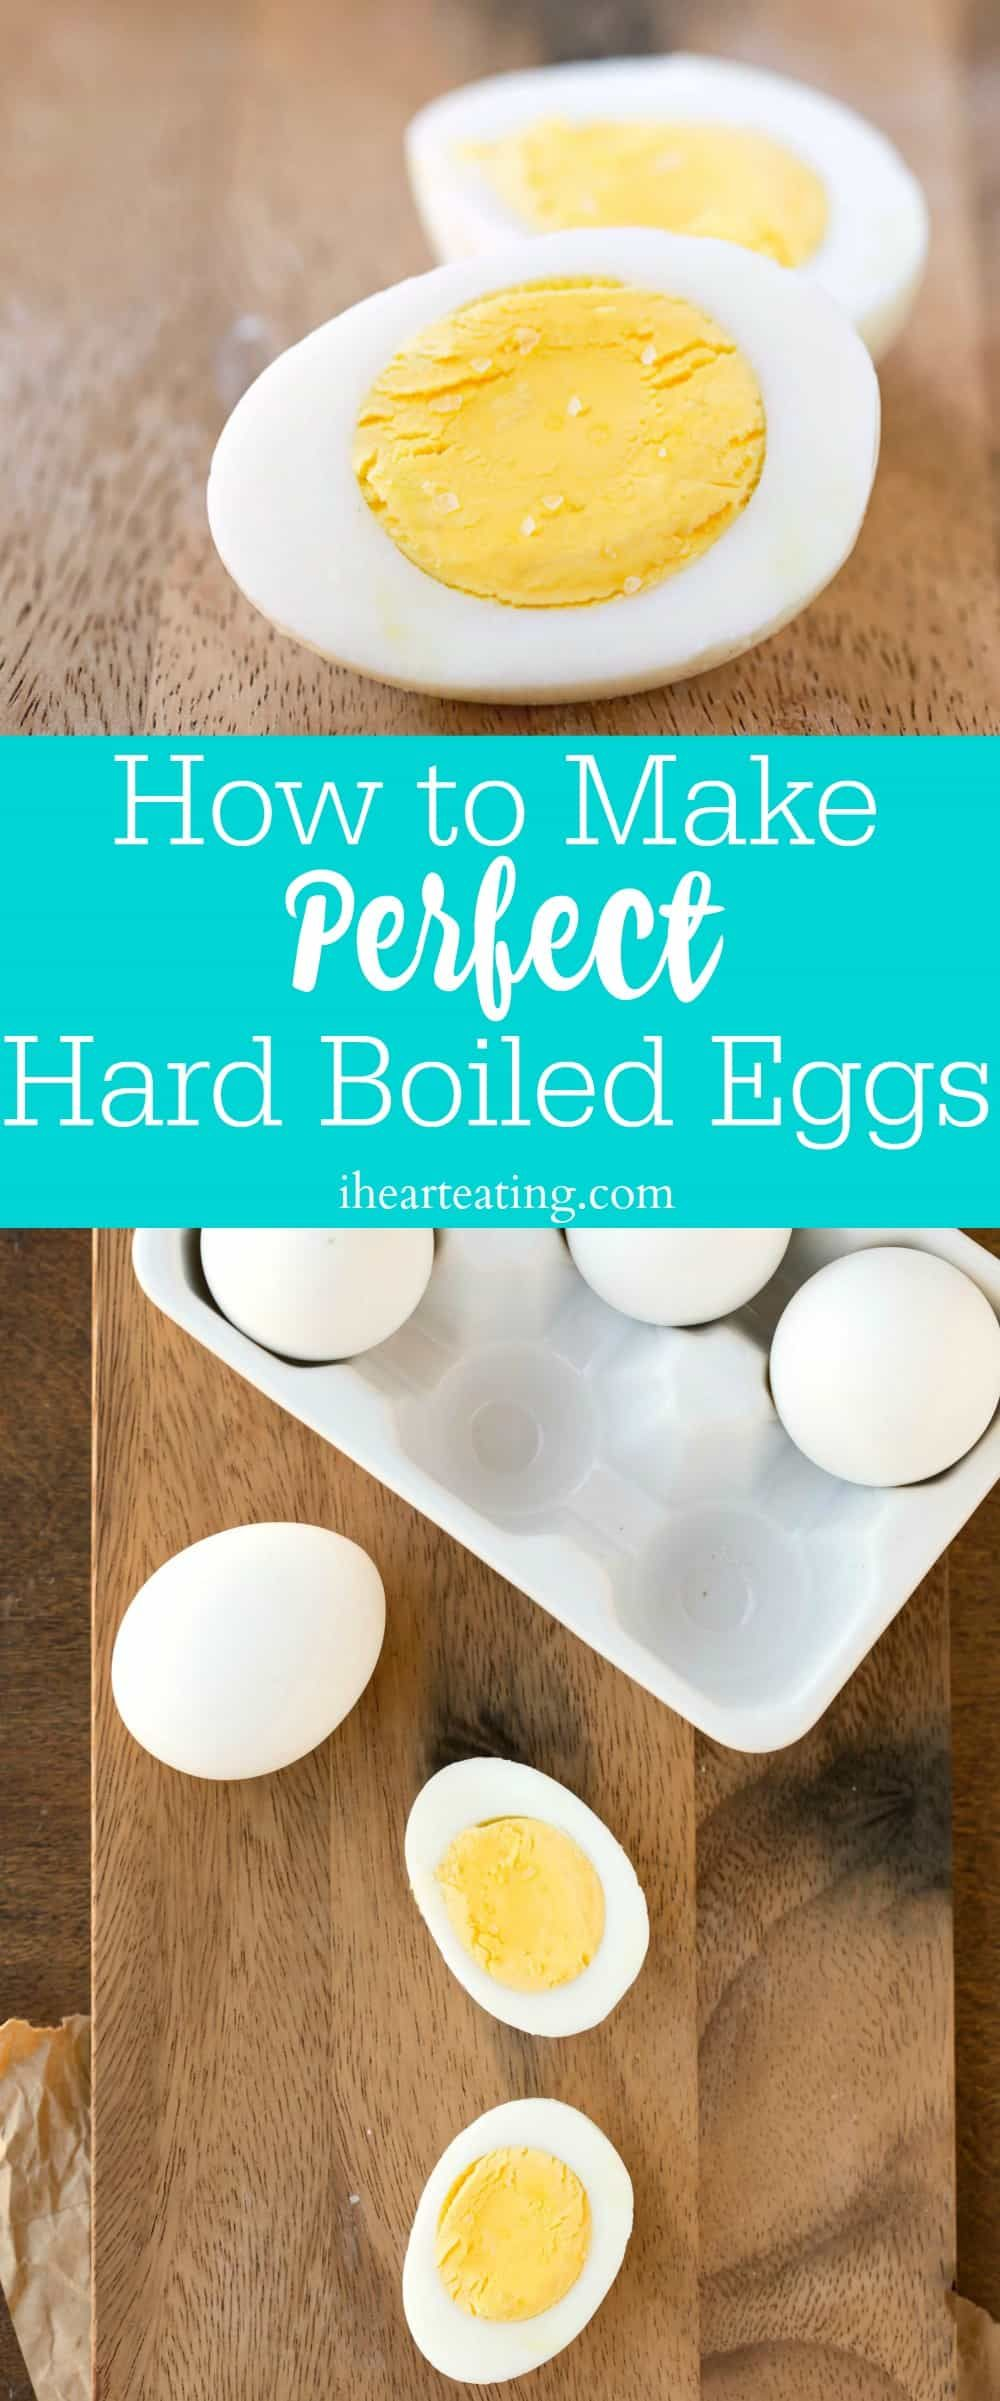 How to make and peel perfect hard boiled eggs